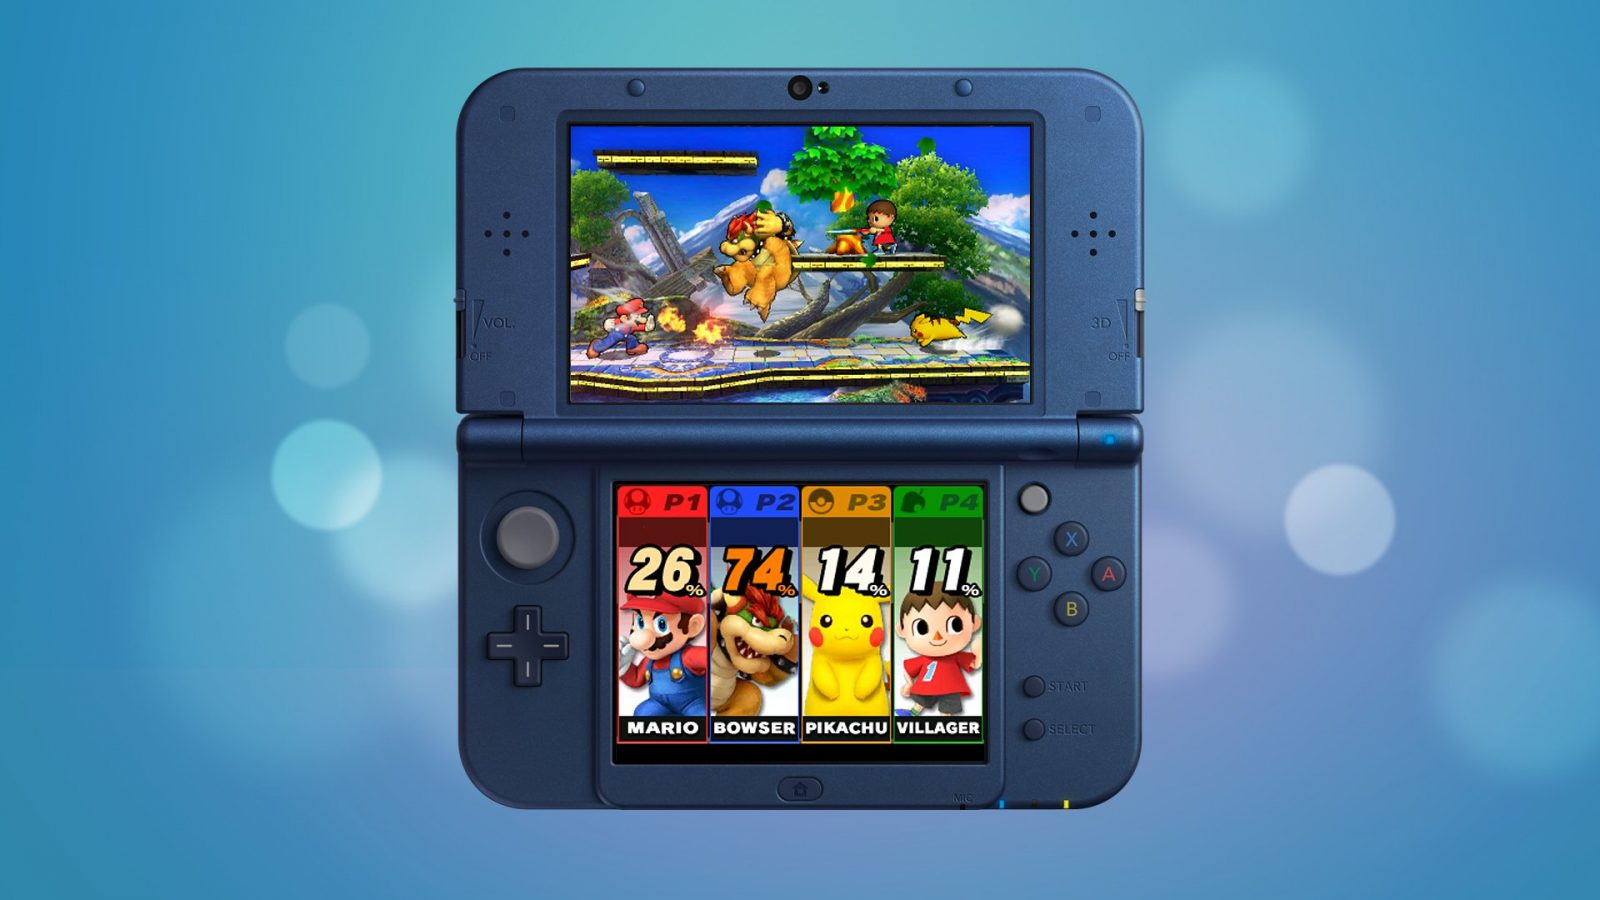 Nintendo 3DS Ending YouTube App Support In The Near Future